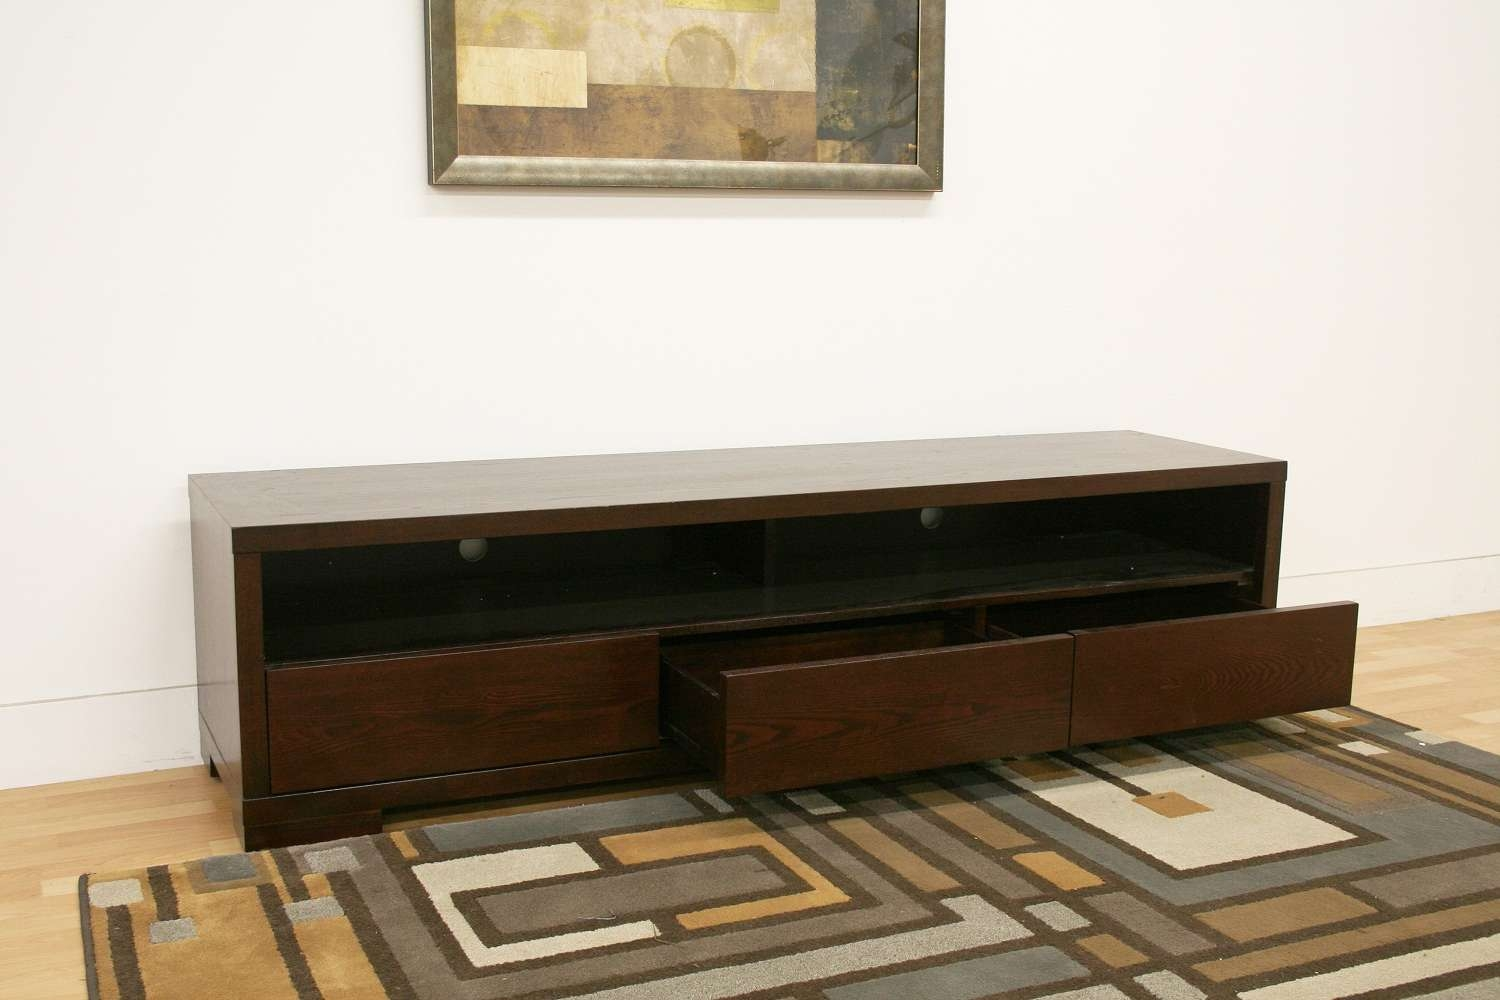 Simple Old Low Profile Media Console With Drawer And Storage Within Low Profile Contemporary Tv Stands (View 15 of 20)